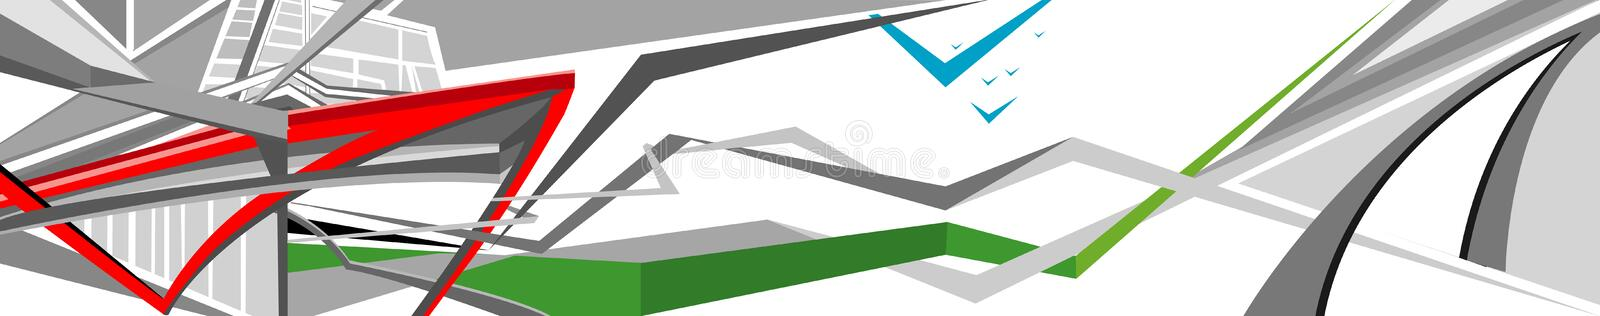 Download Abstract backround stock illustration. Image of white - 16055636